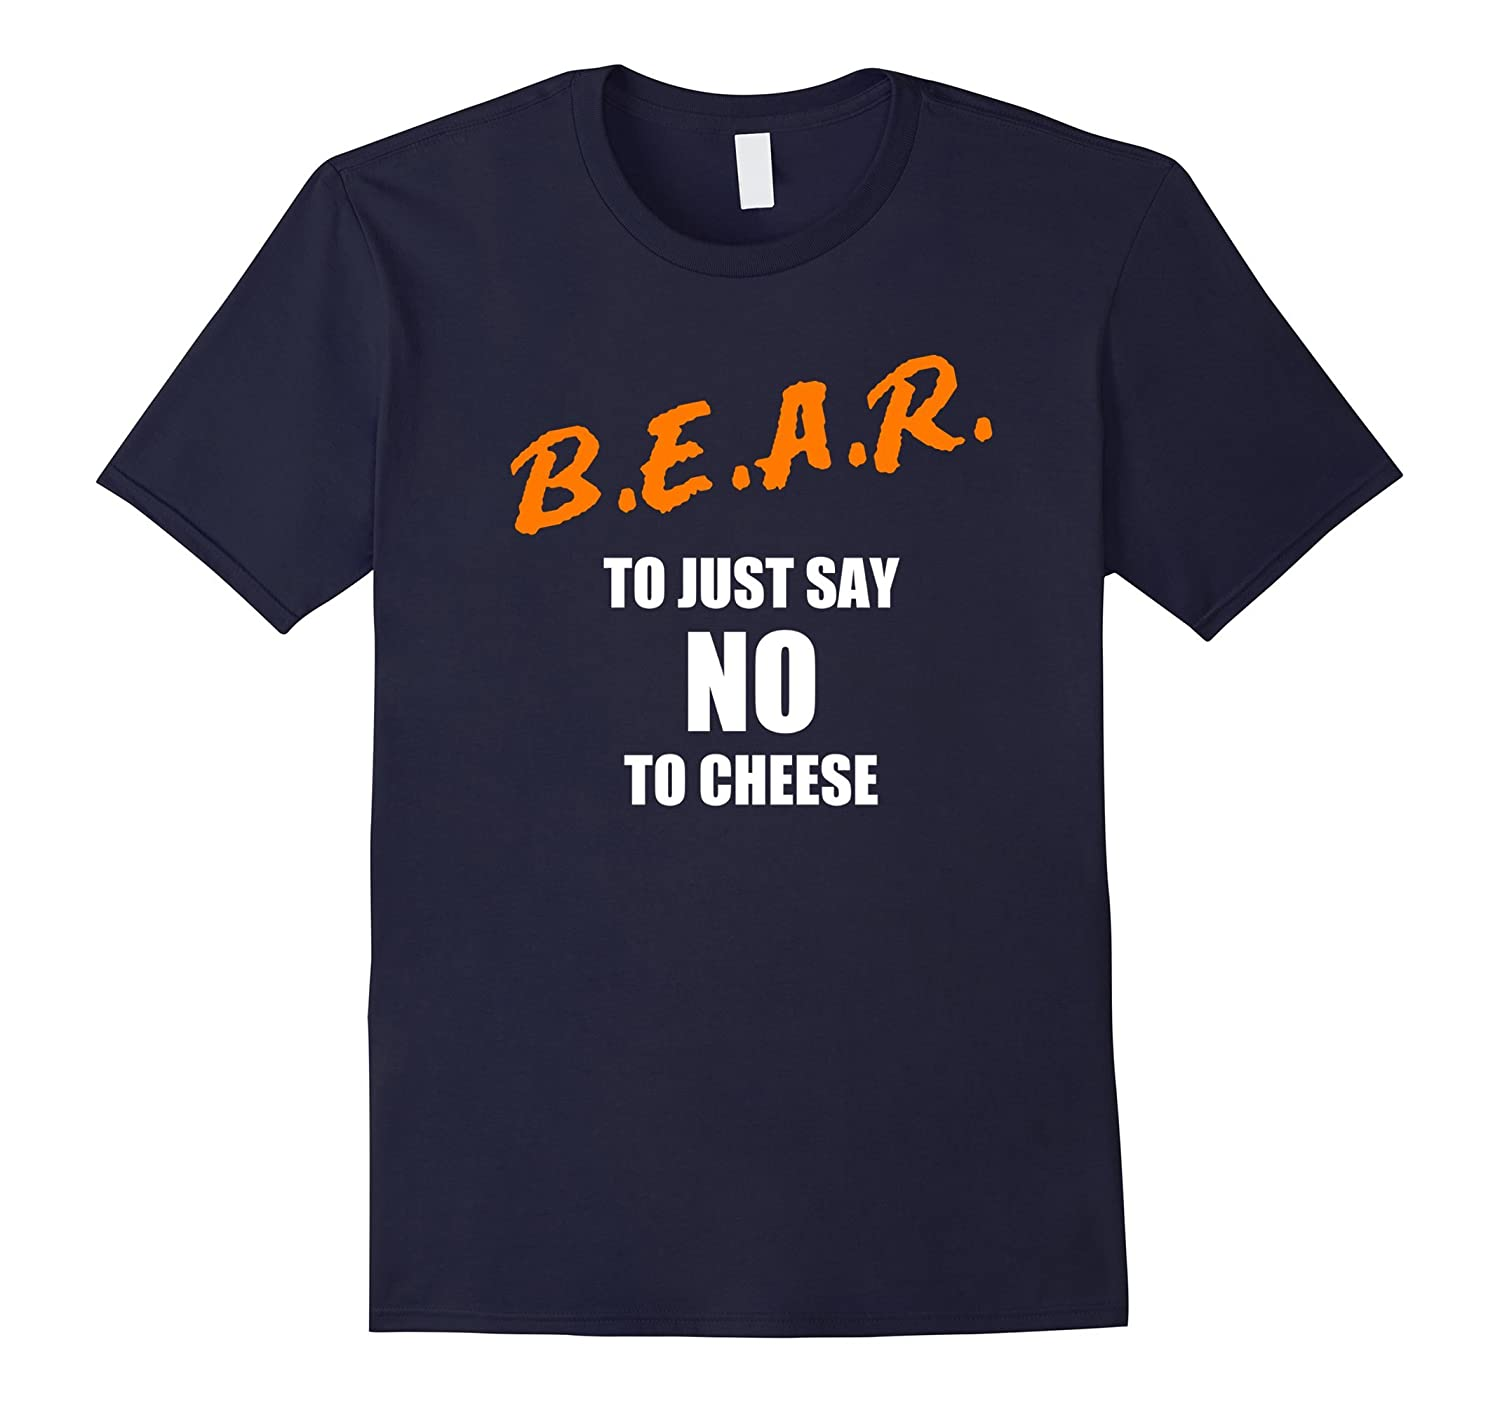 B.E.A.R. to Say No to Cheese Chicago rivalry t-shirt-FL